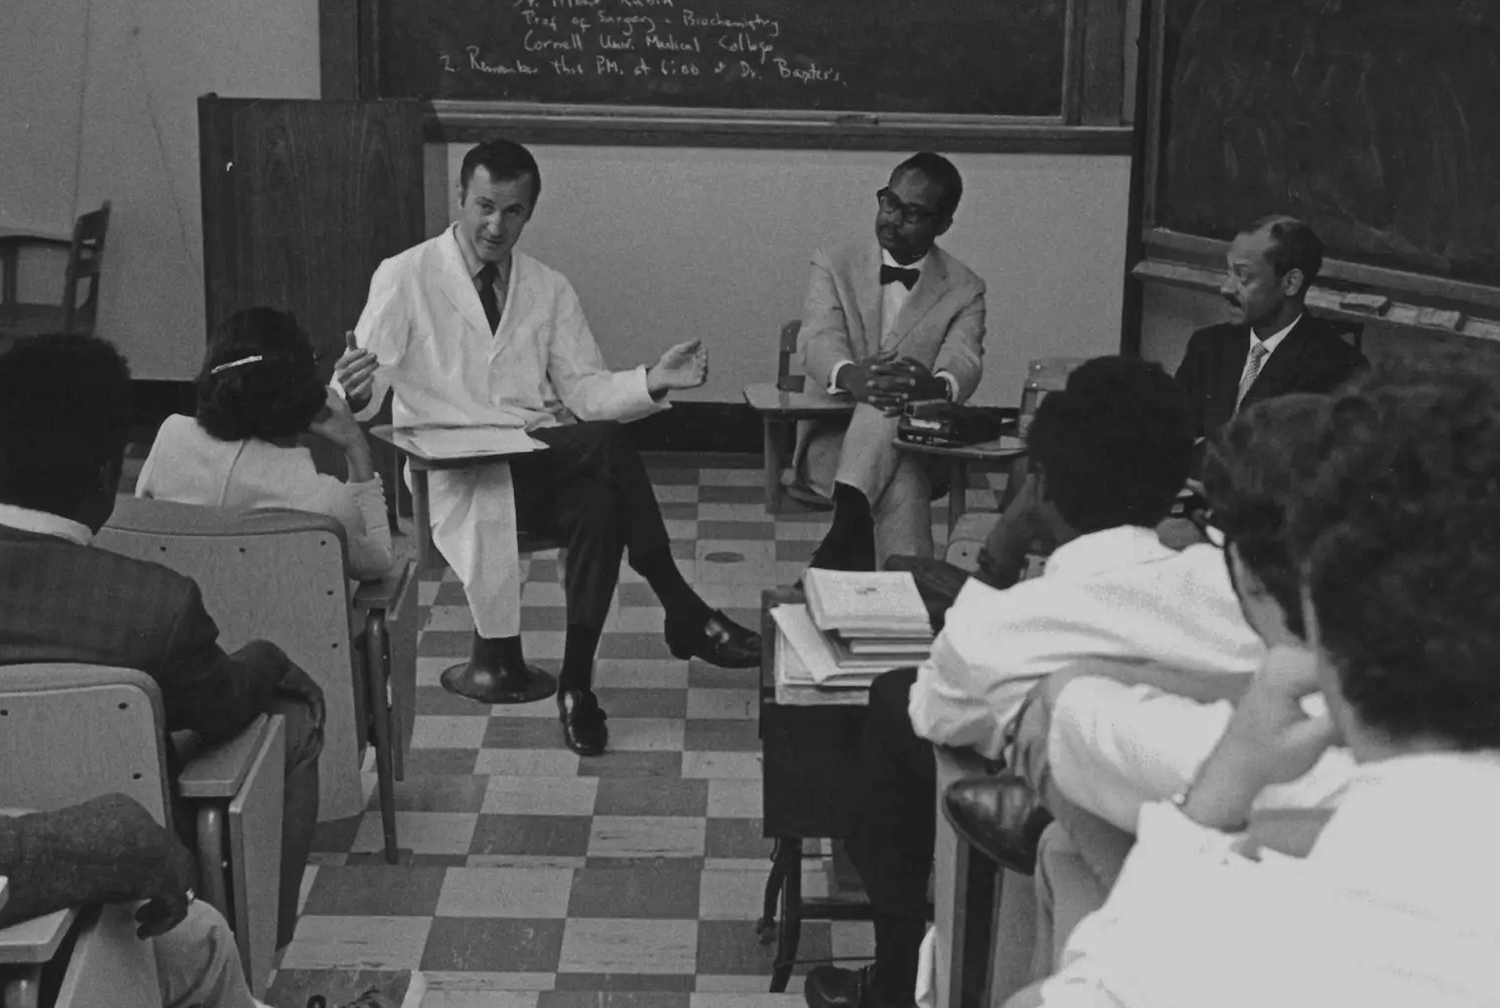 Historical photo of students in a classroom